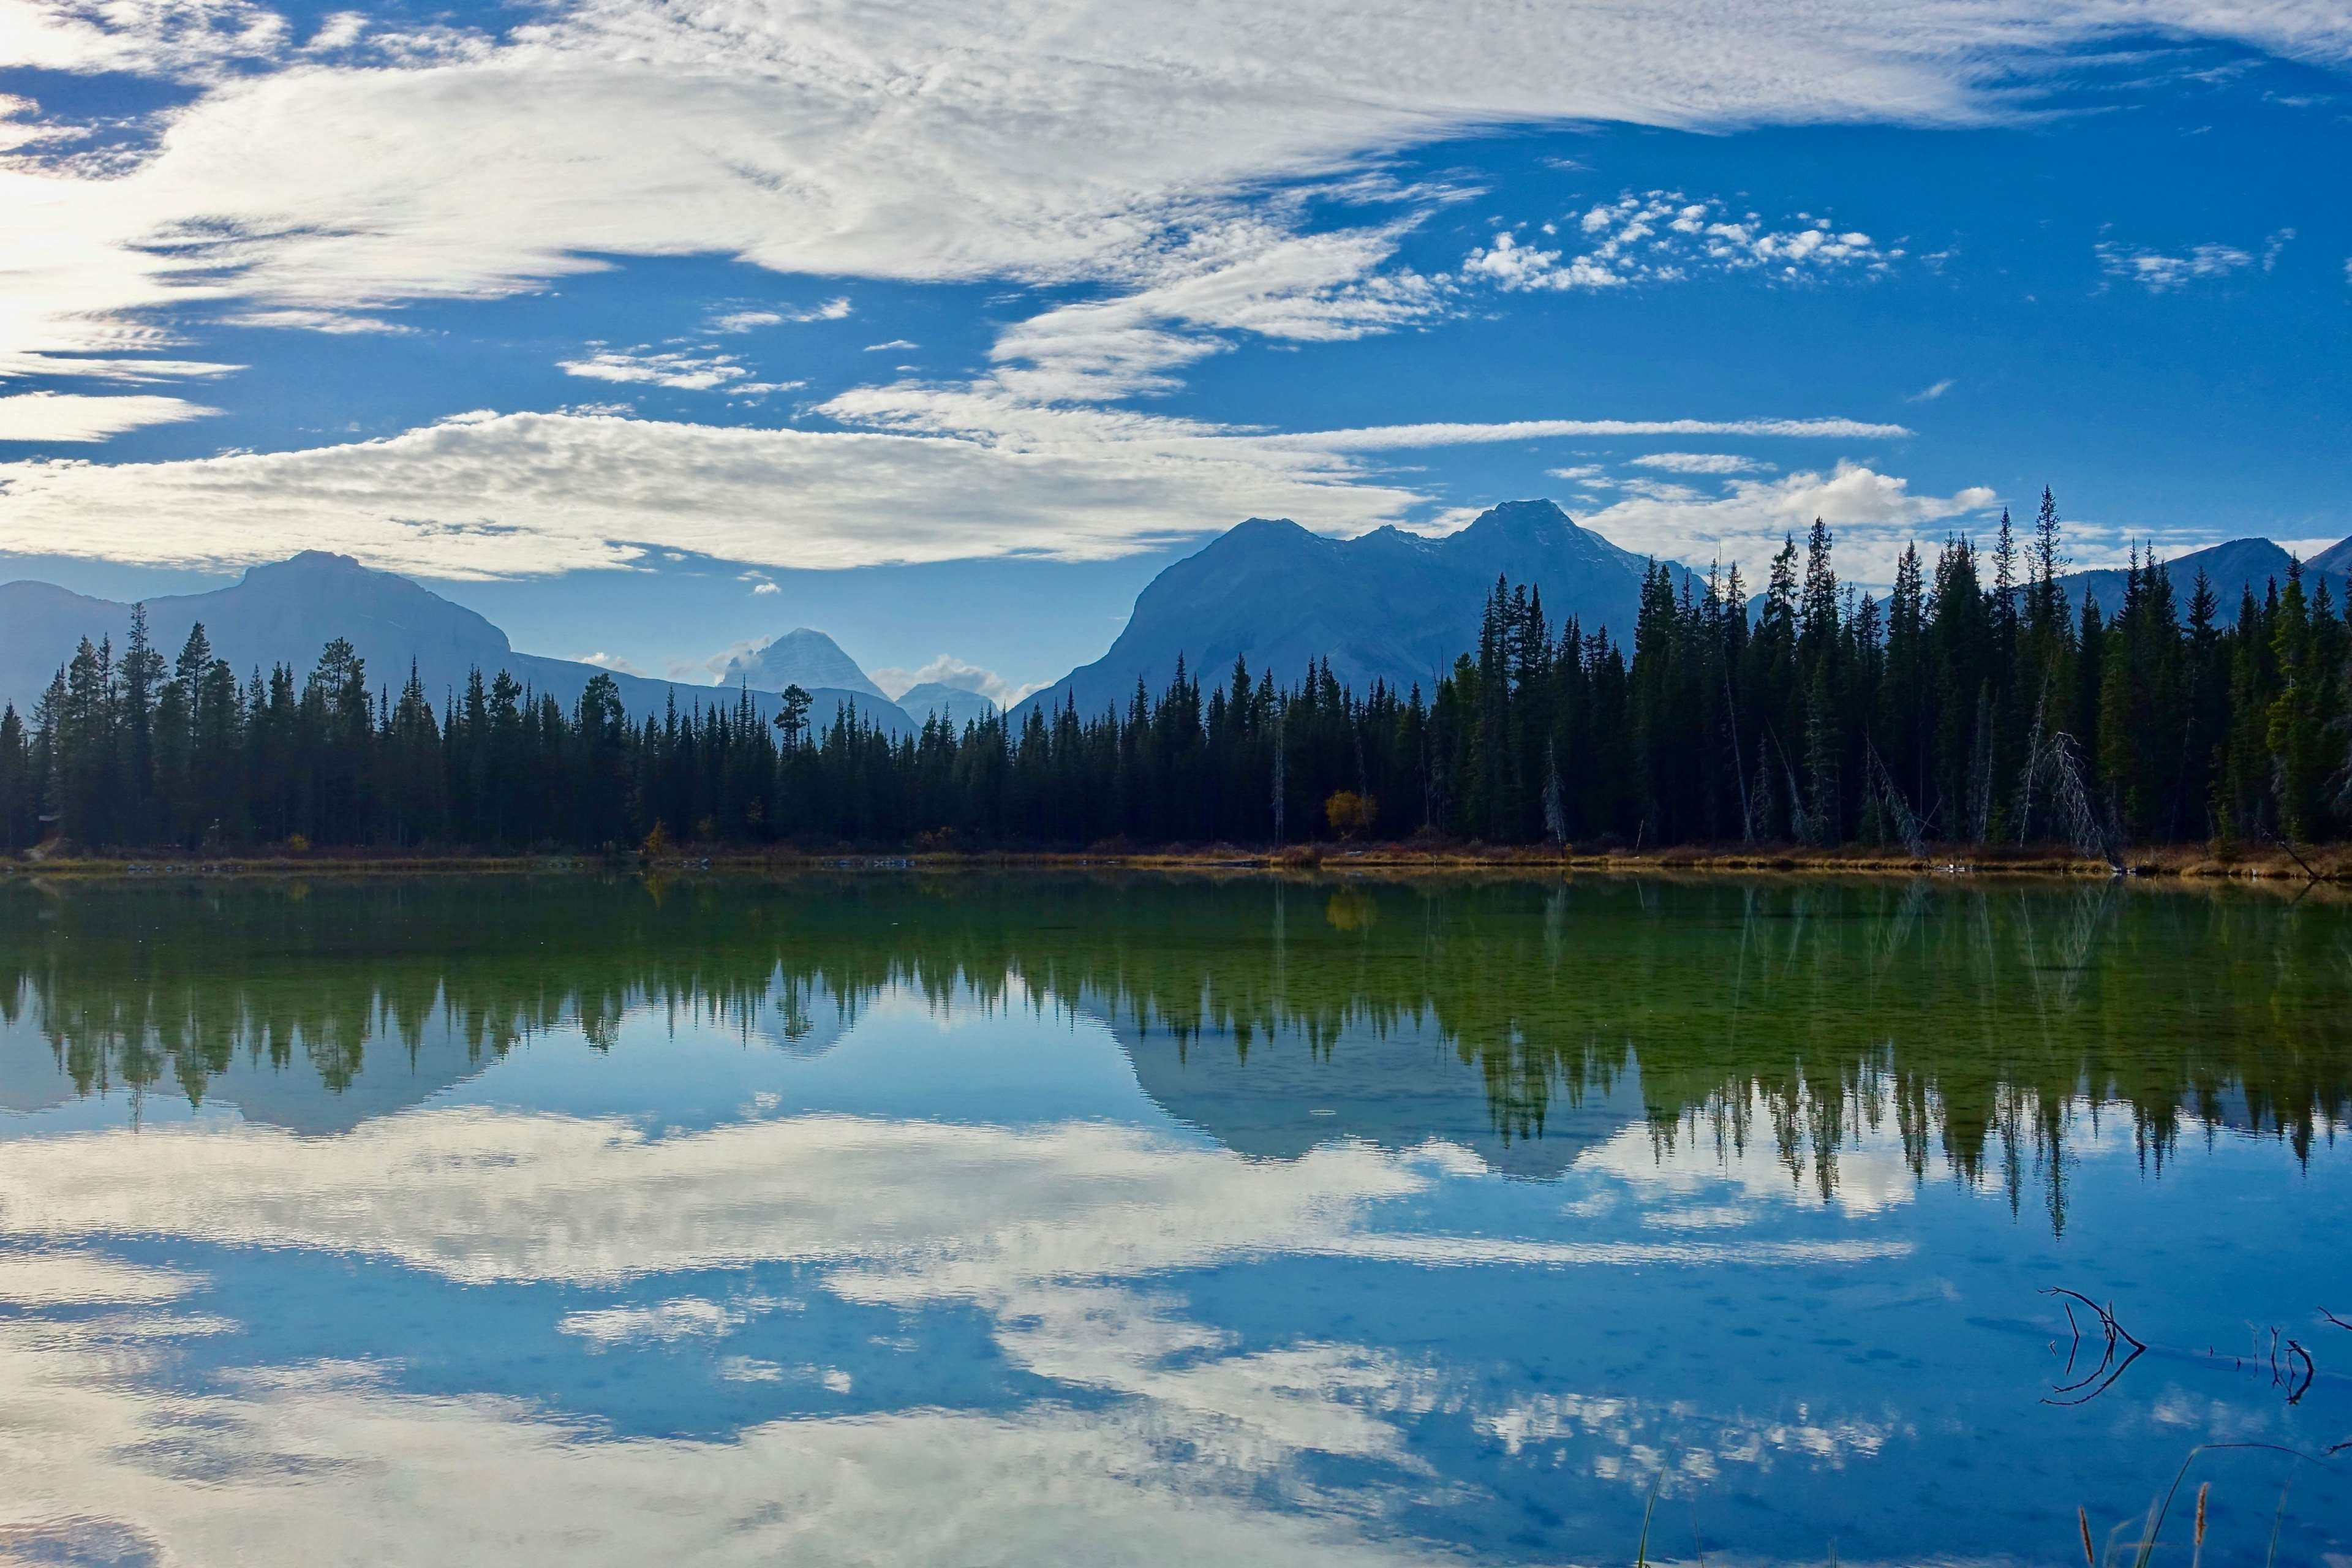 Lake Landscape Mountain Nature Outdoors Reflection River Scenic Tranquil Trees Water 4k Wallpaper